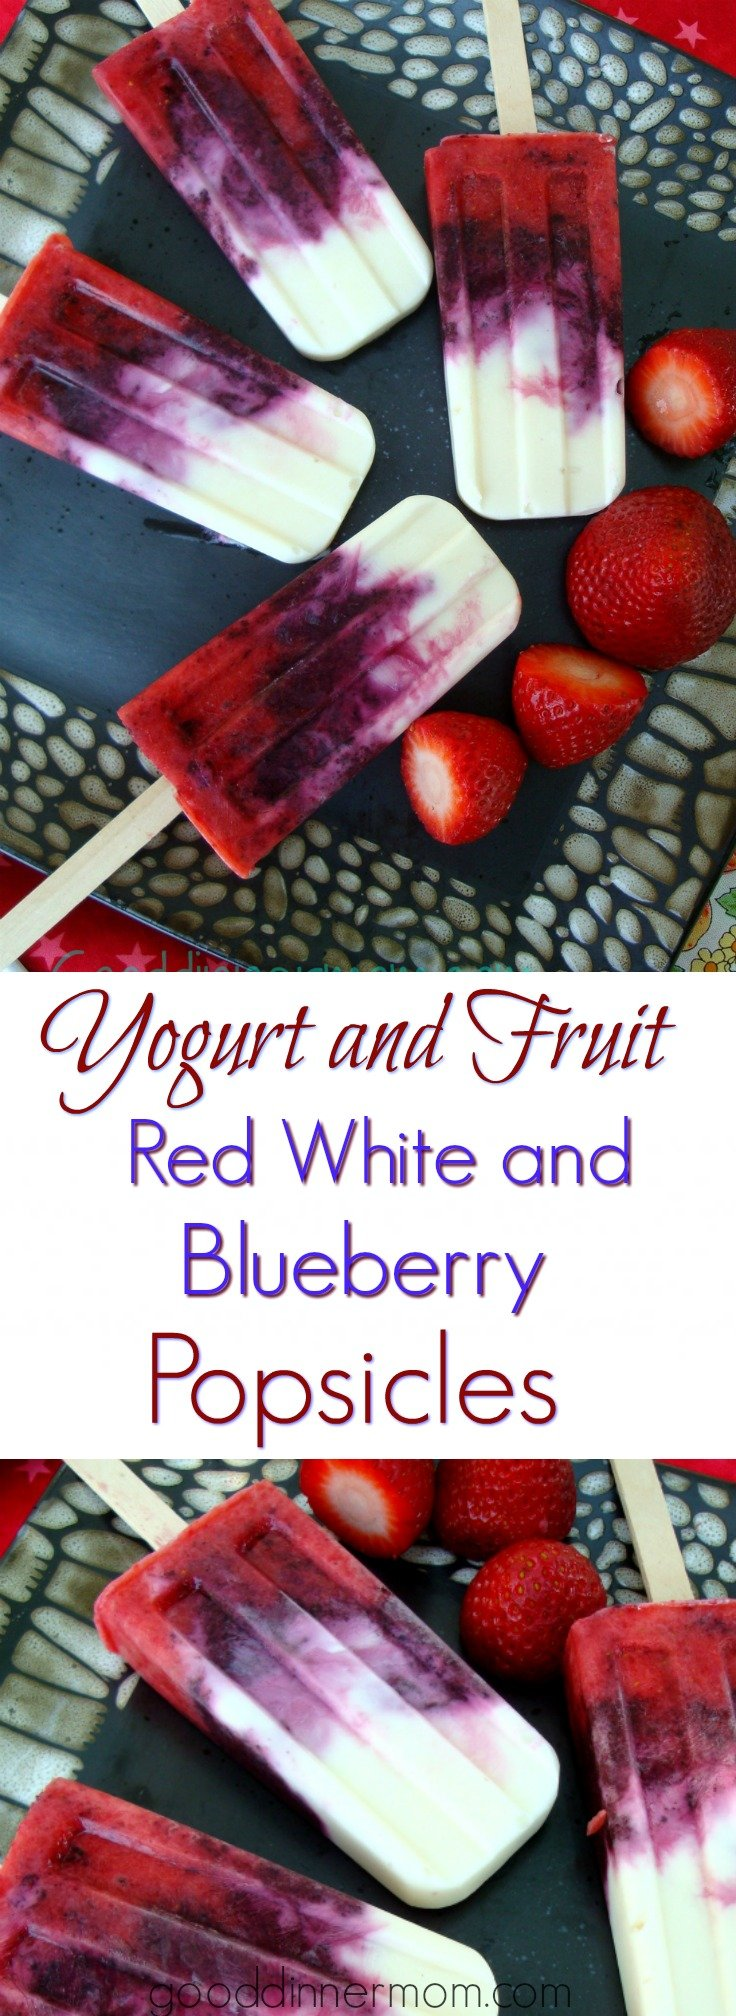 Fresh strawberries, blueberries and yogurt combine with a touch of honey for sweetness. Delicious and healthy red, white and blueberry popsicles.